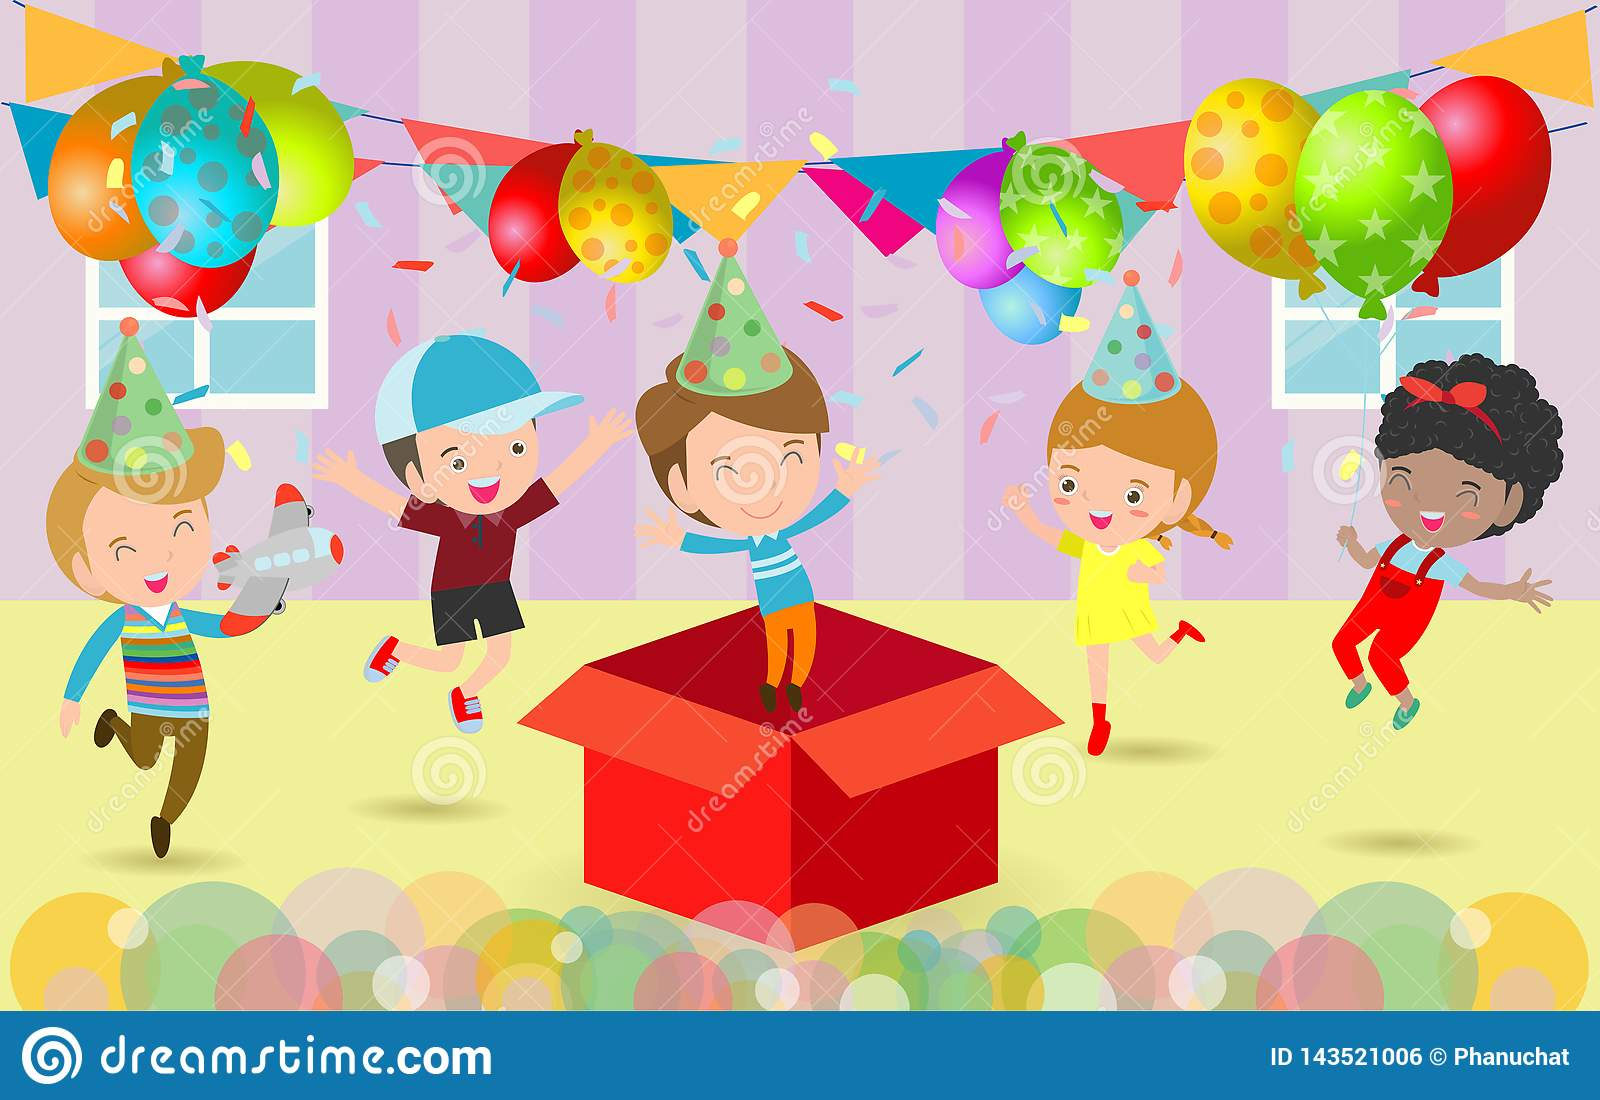 Birthday Party Kids Stock Illustrations 33 161 Birthday Party Kids Stock Illustrations Vectors Clipart Dreamstime